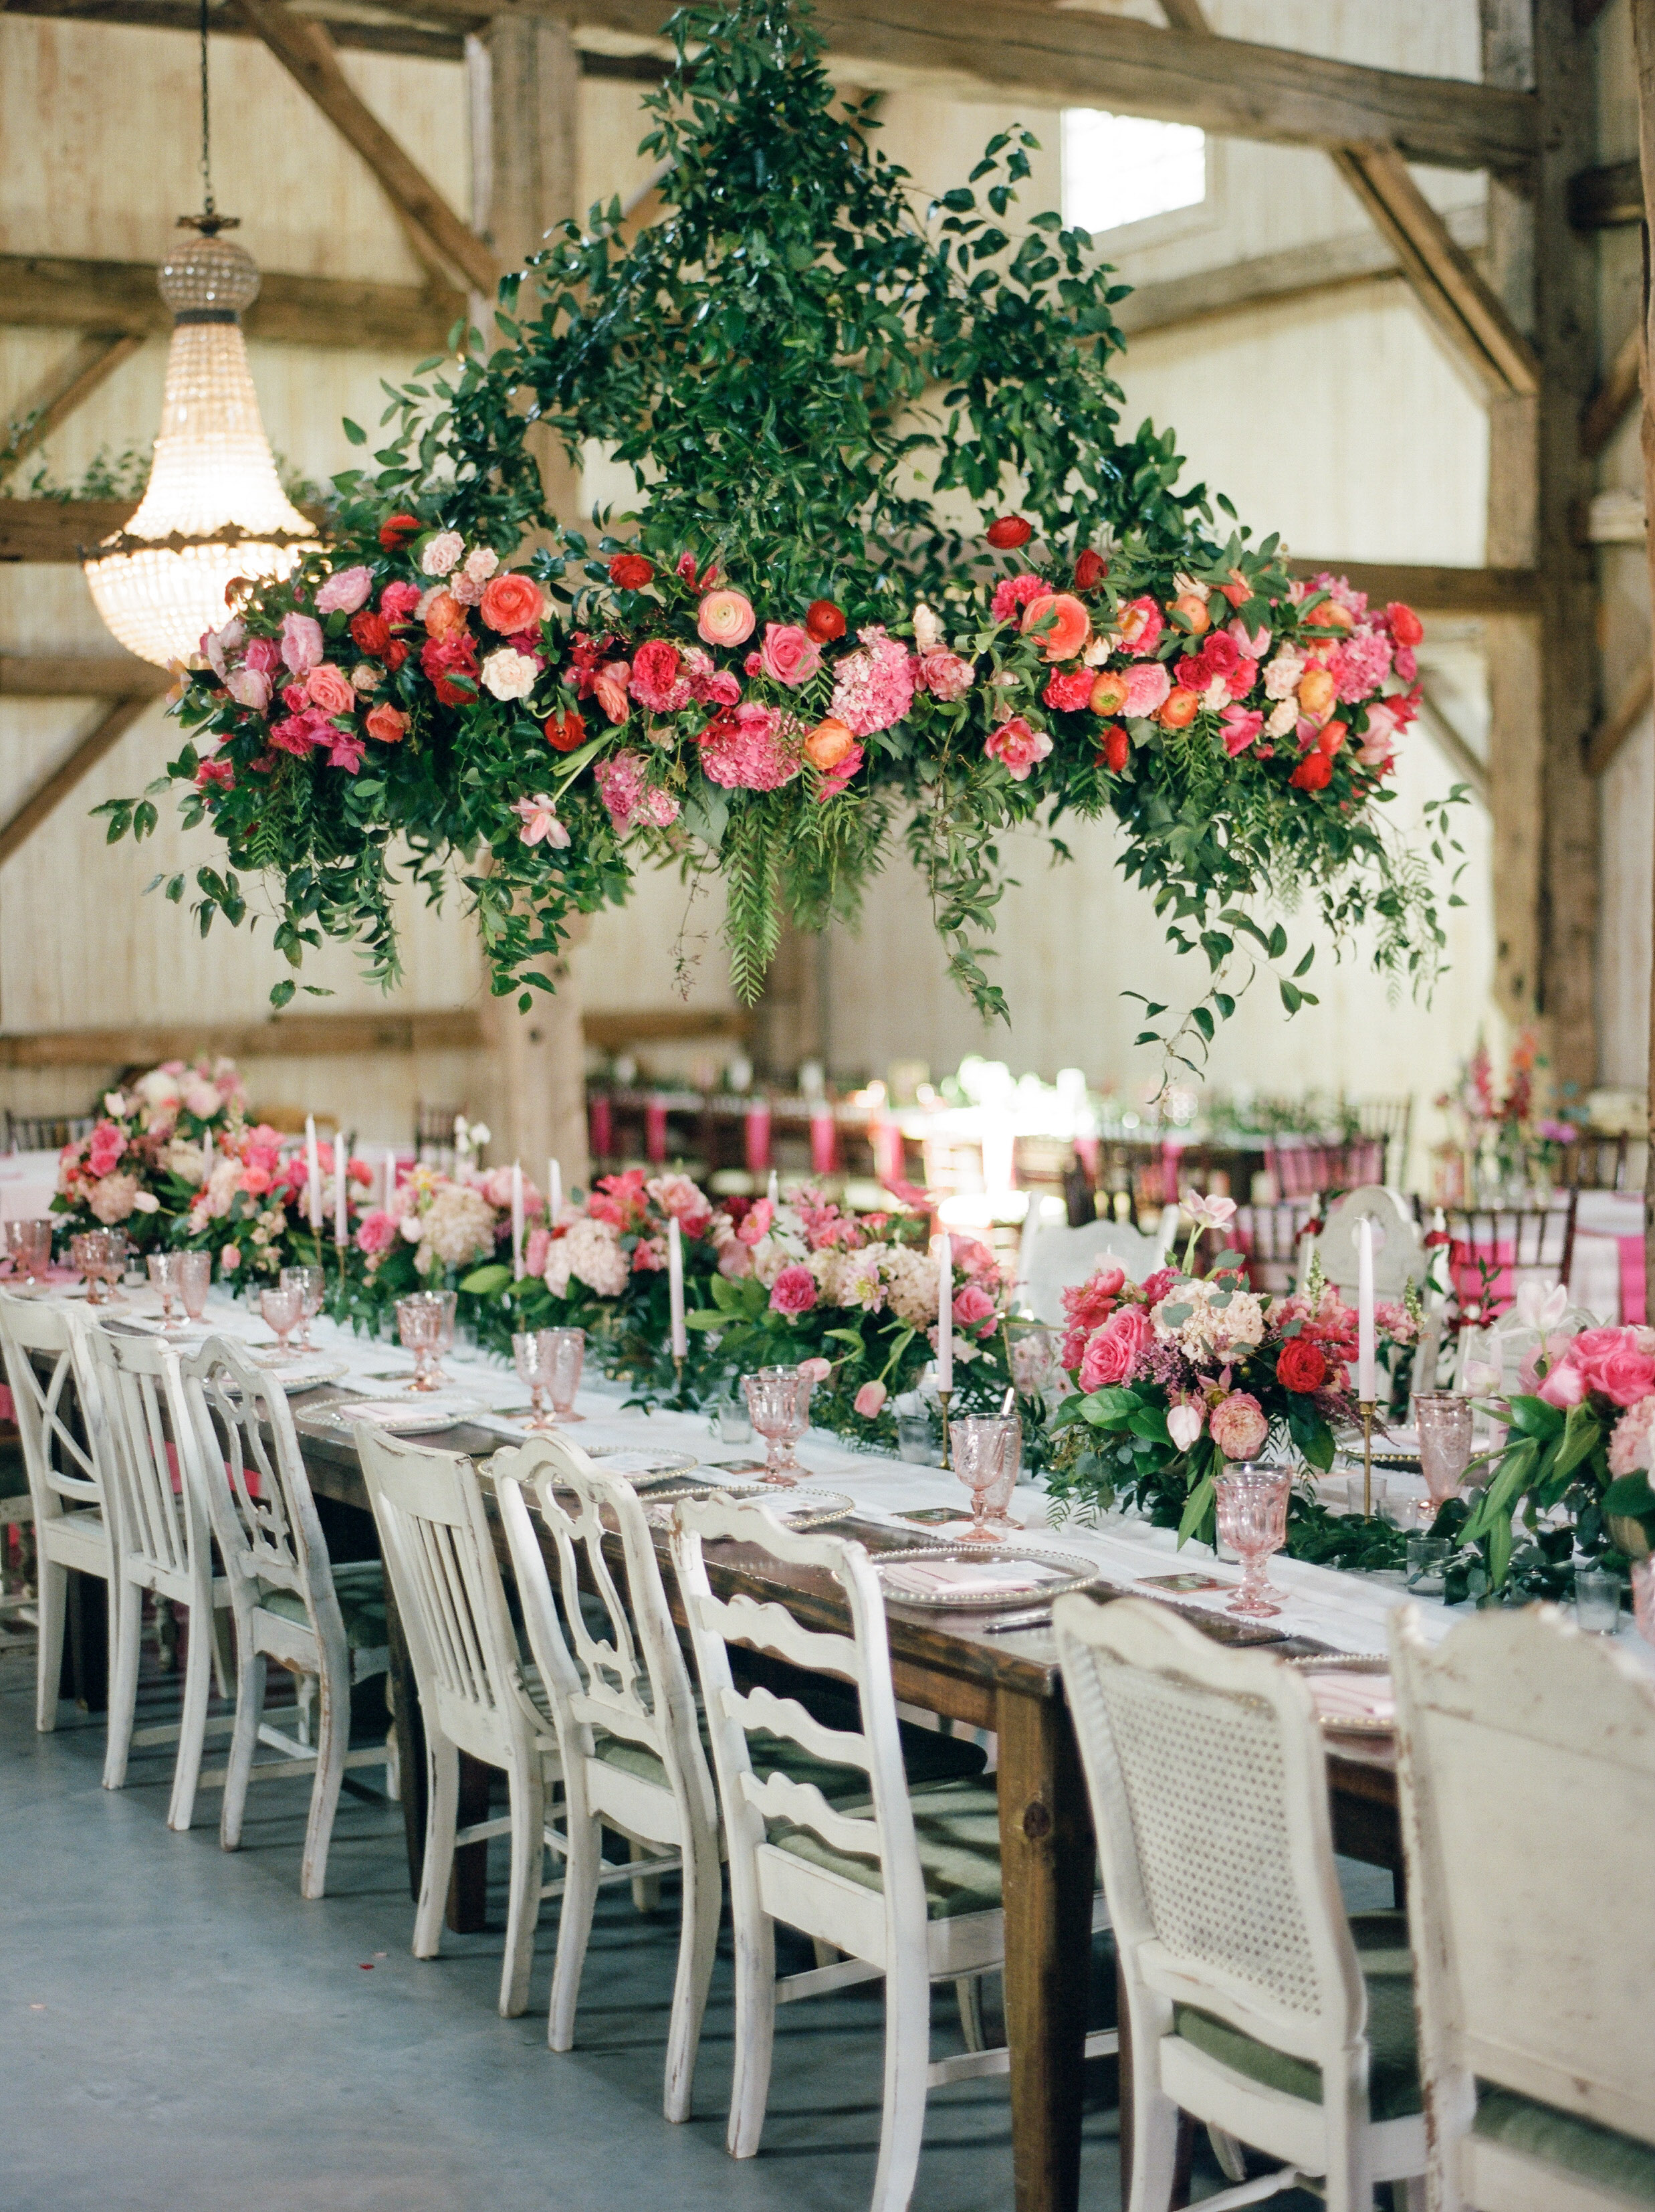 Venue: Chandelier Grove, Planning & Design: Two Be Wed, Florals: Flower Vibes